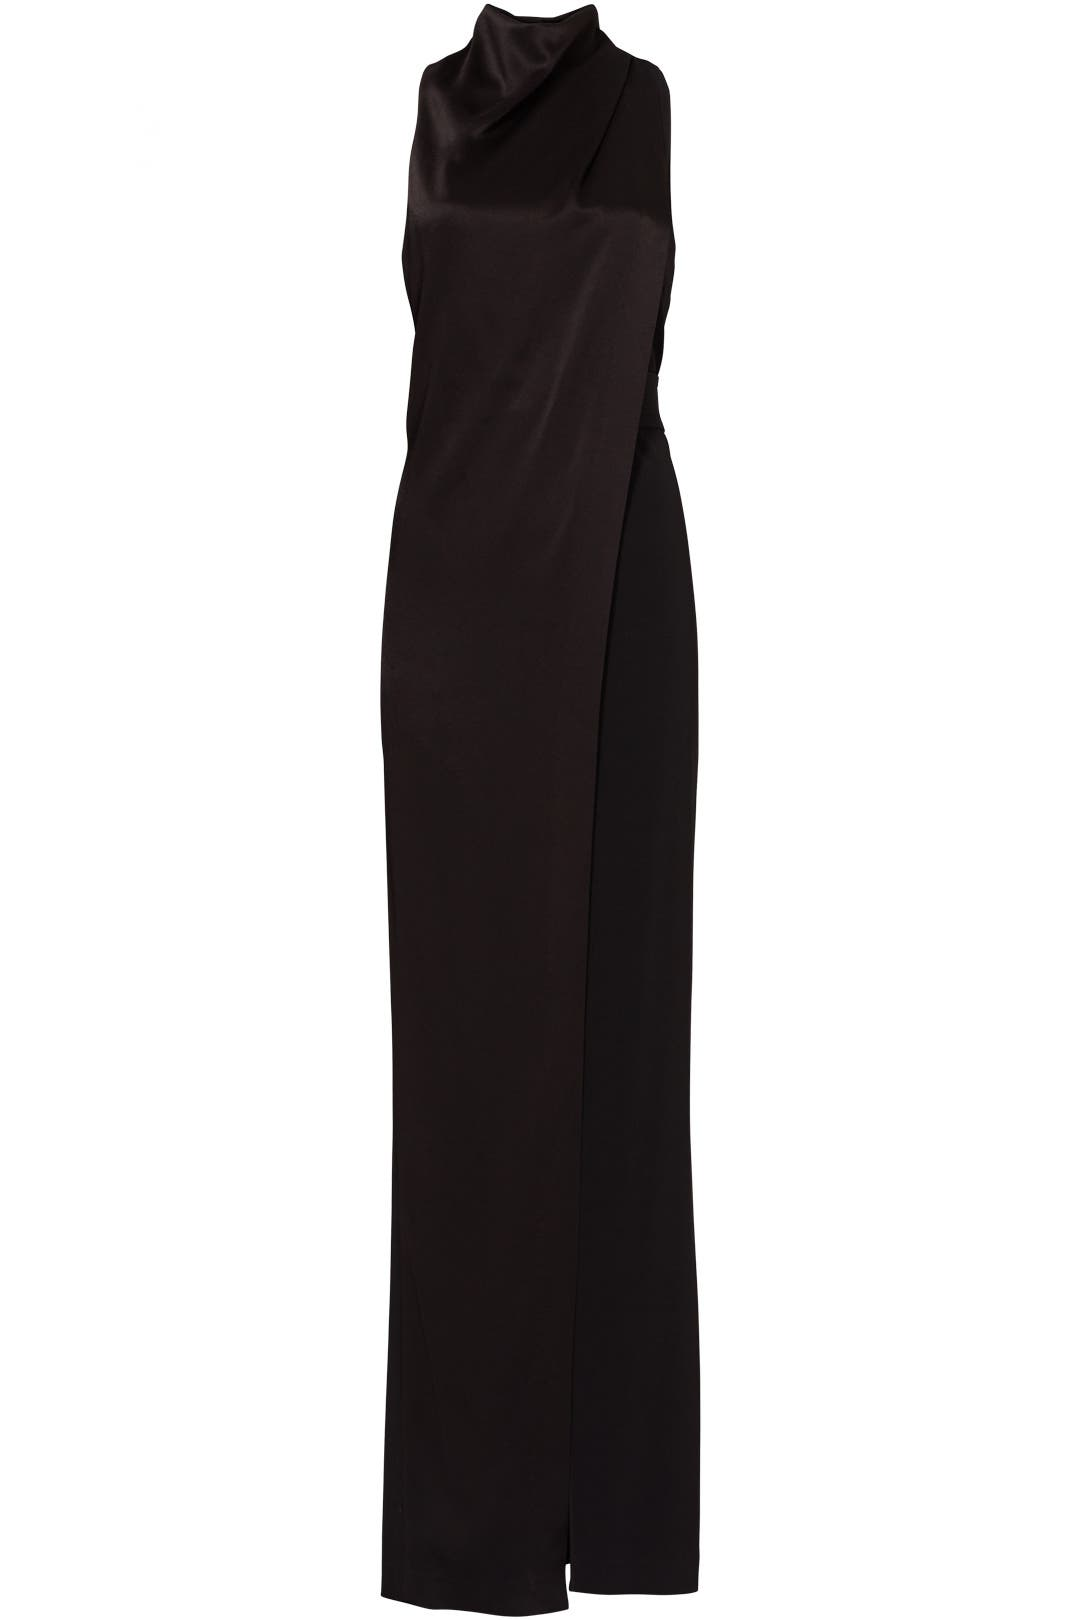 Black Smooth Draped Gown by Halston Heritage for $55 - $75 | Rent ...